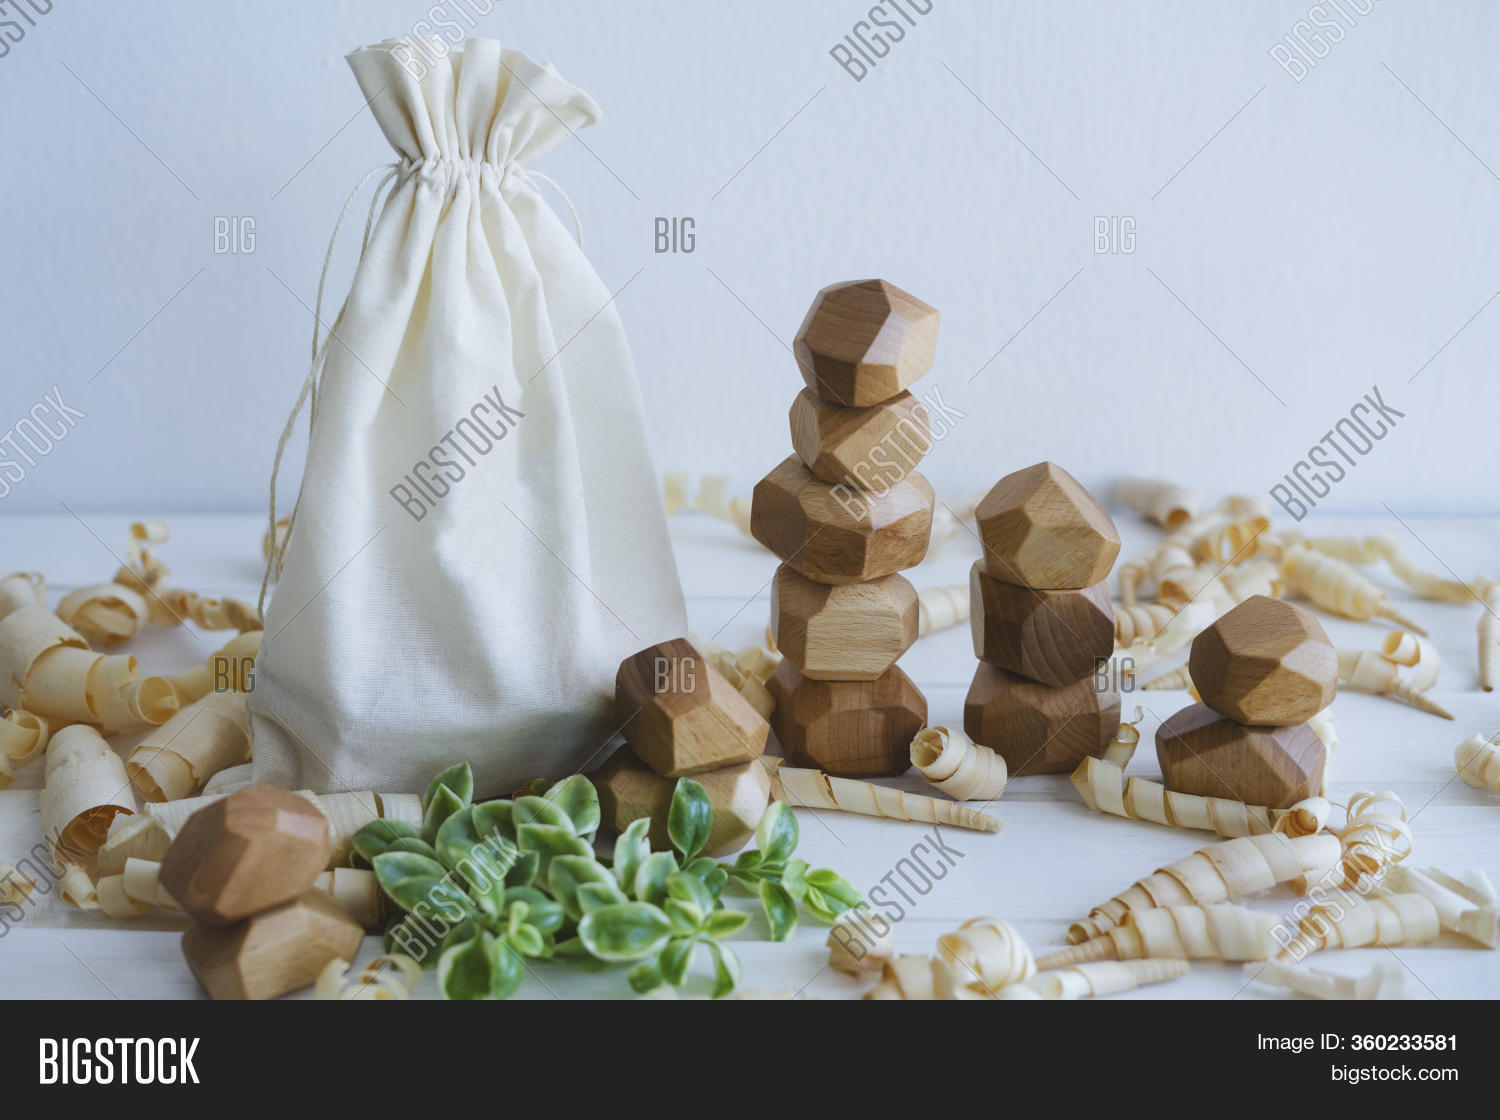 Linen Bag For Packing Wooden Toys. Wooden Stones. A Toy Made Of Natural Wood. Unusual Cubes For Deve